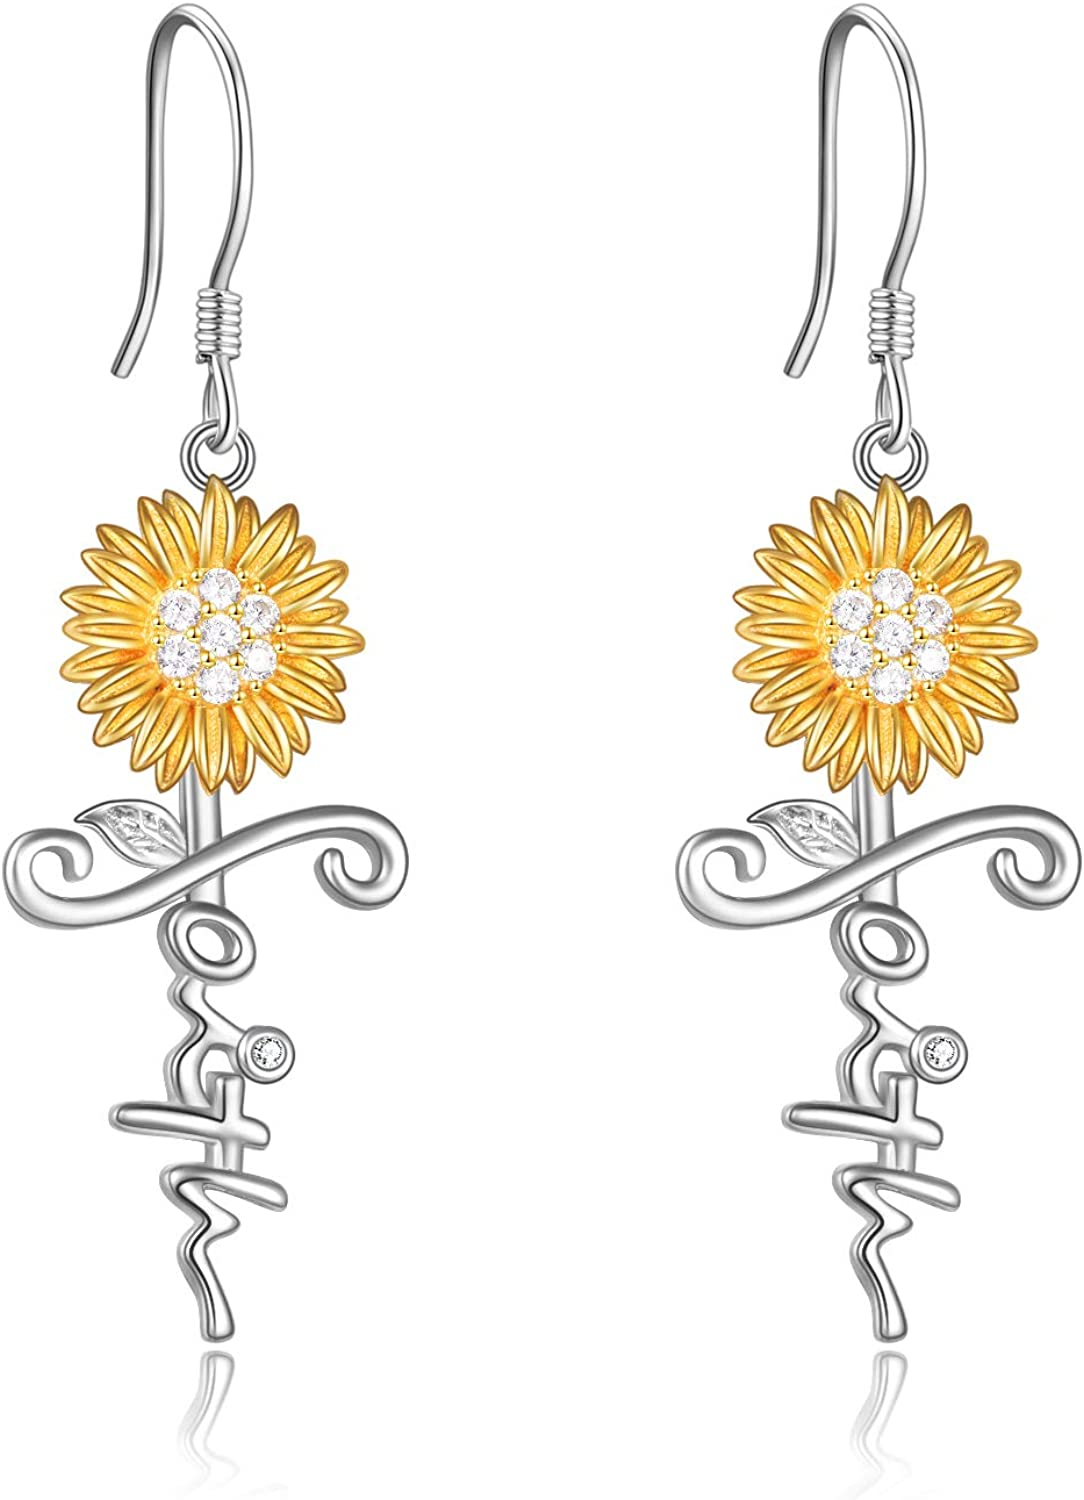 POPLYKE Sunflower Jewelry 925 D Dangle Ranking TOP5 Sterling Ranking integrated 1st place Silver